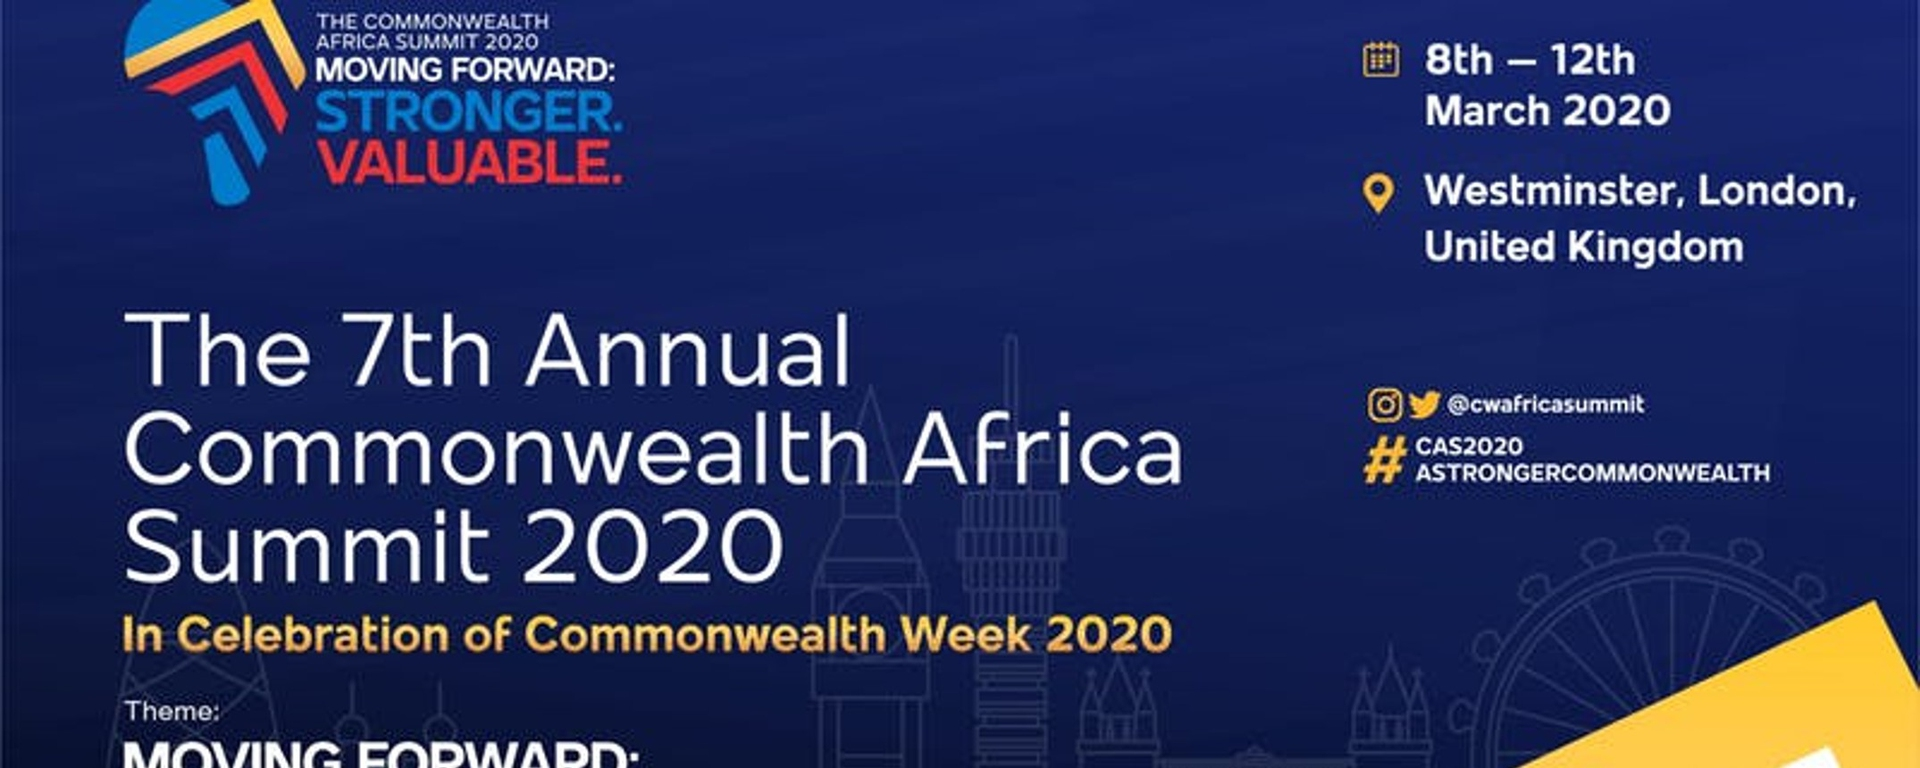 Commonwealth Africa Initiative - 7th Annual Commonwealth Africa Summit #CAS2020! Stronger. Valuable Movemeback African event cover image